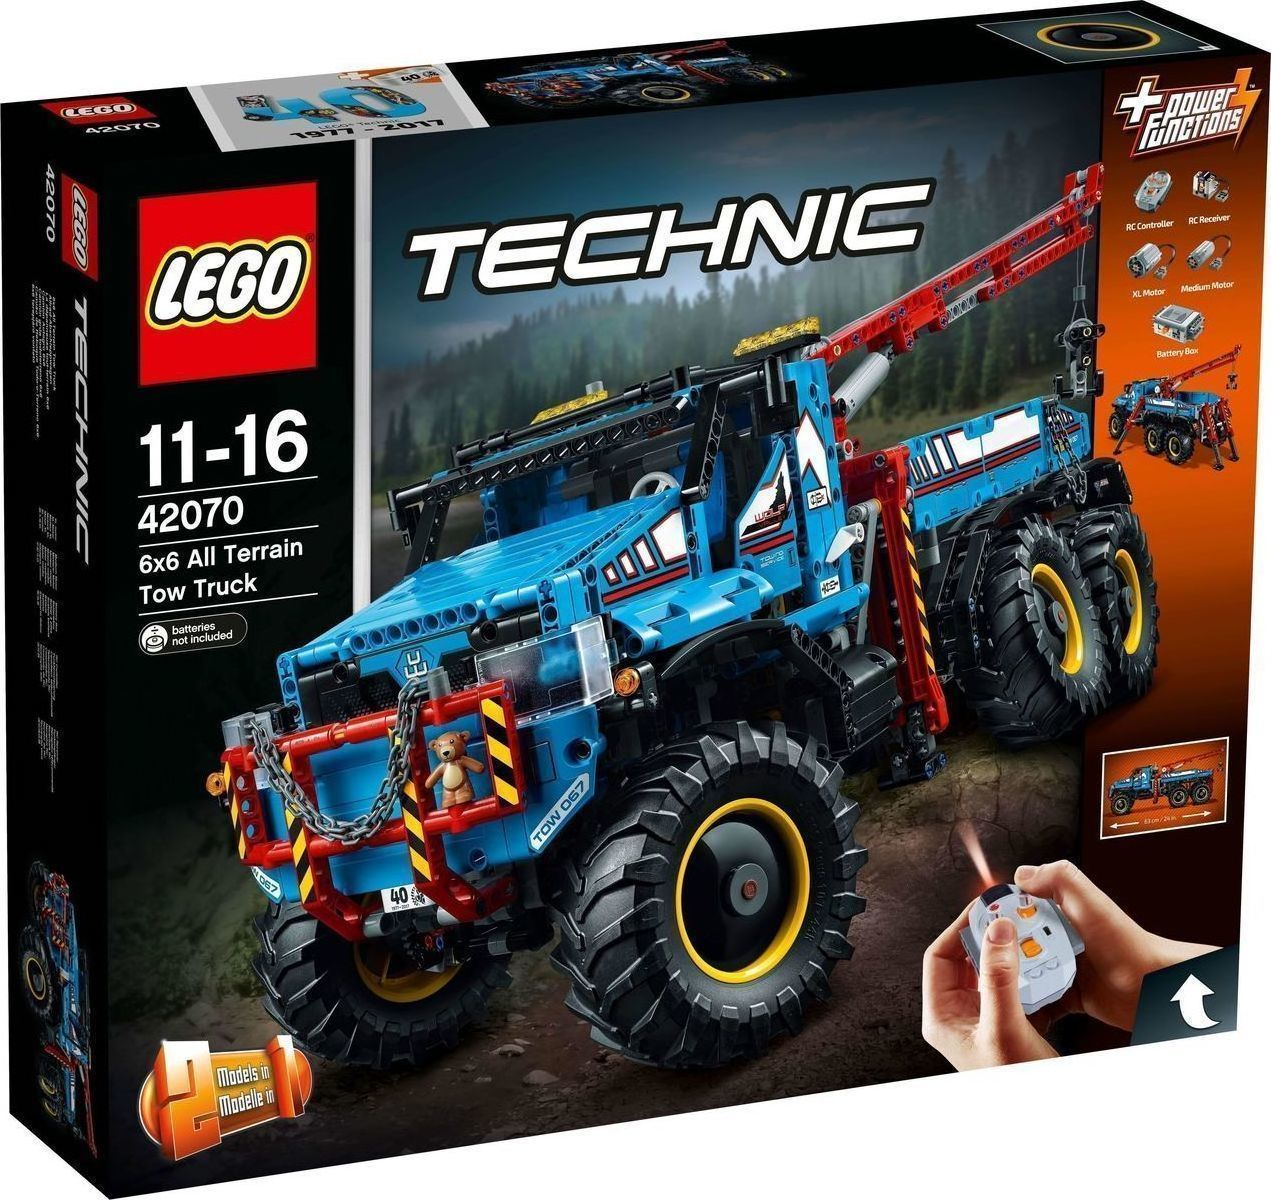 Lego Technic: All Terrain Tow Truck 42070